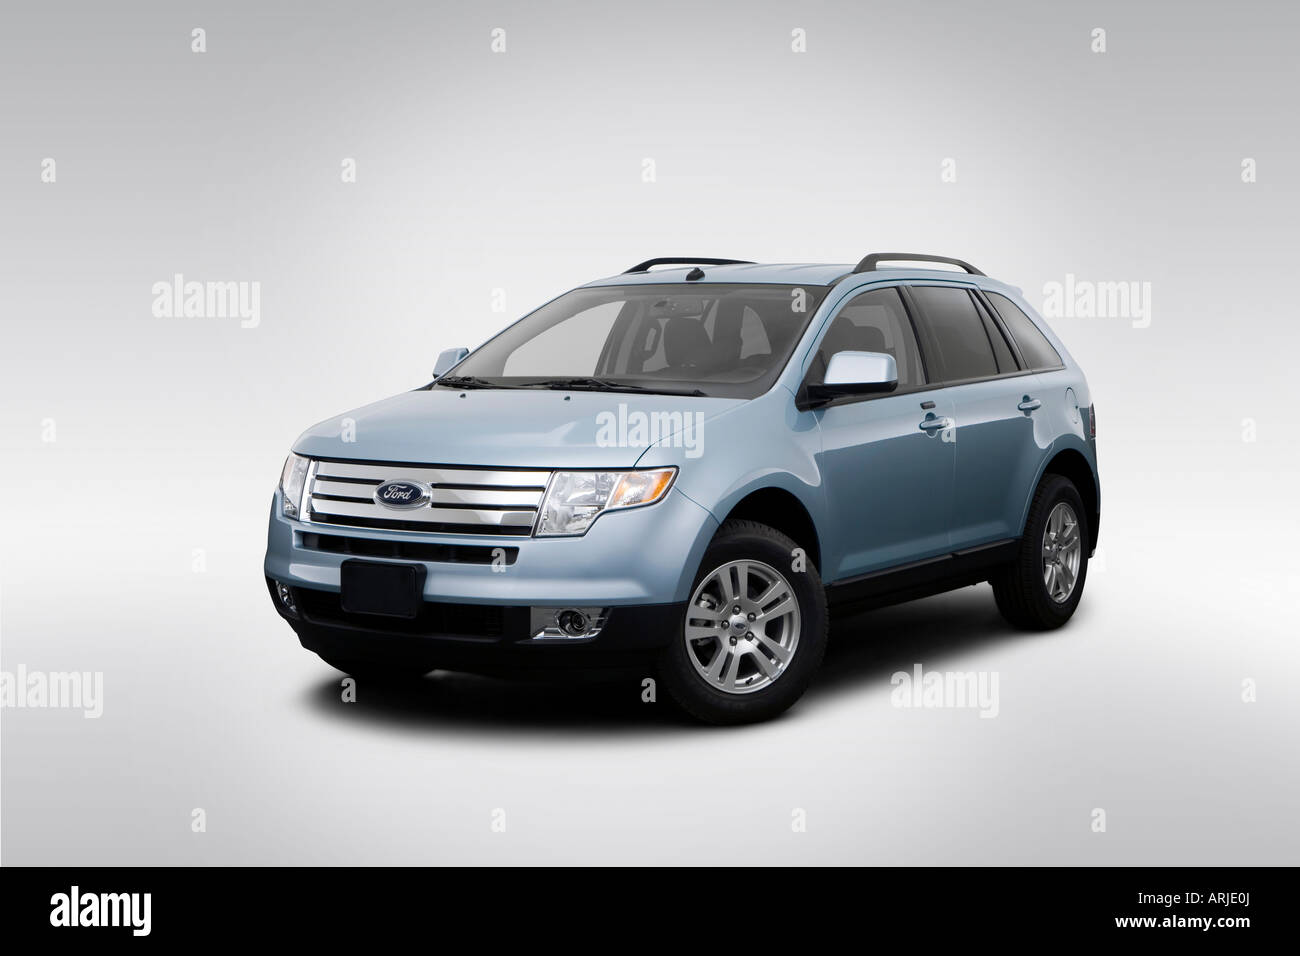 2008 ford edge sel in blue front angle view stock photo 16067297 alamy. Black Bedroom Furniture Sets. Home Design Ideas